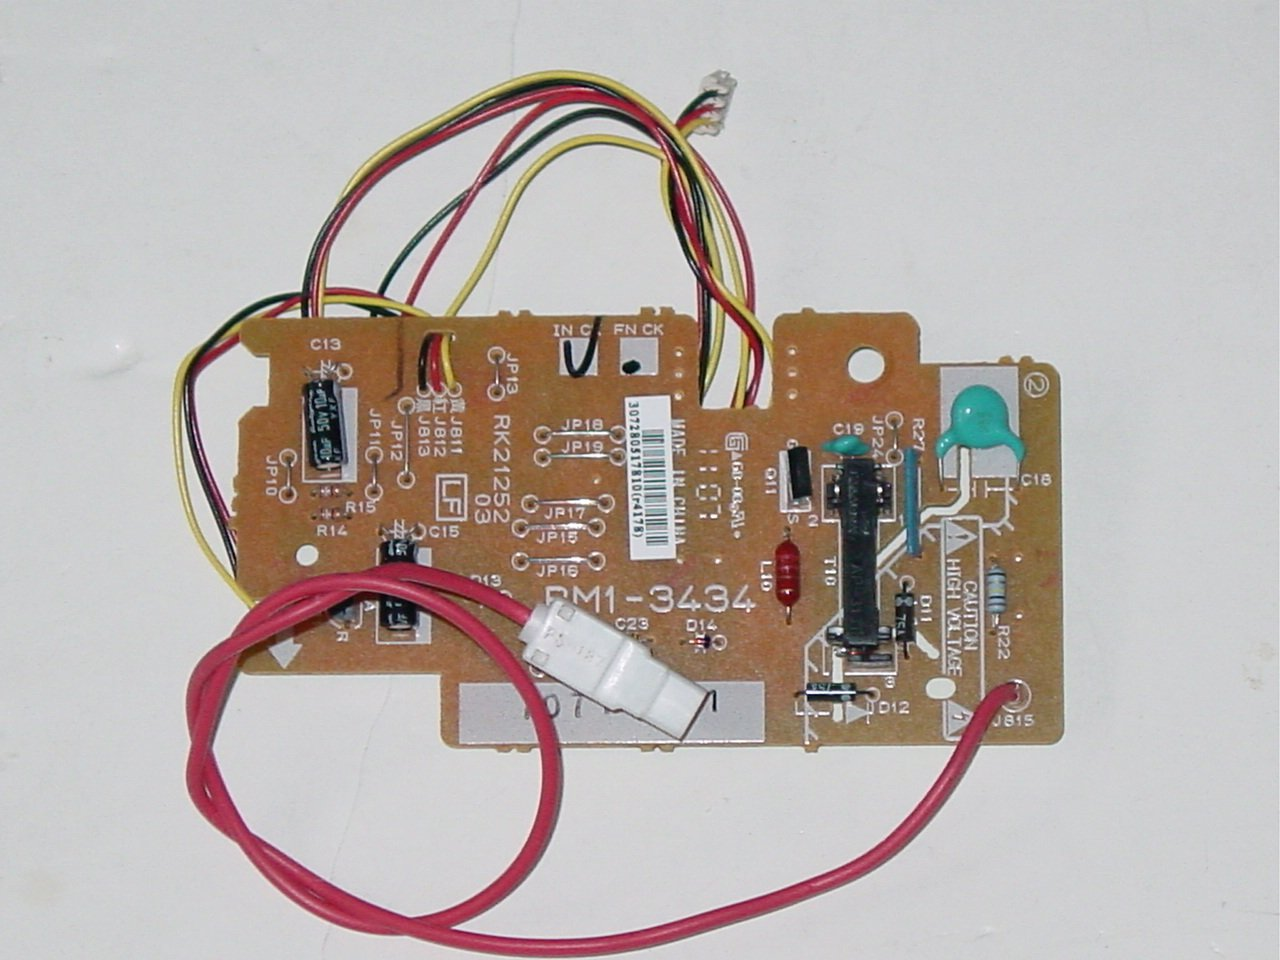 HP RM1-3434 LaserJet Color  Printer Sub-High Voltage Power Supply Control Board